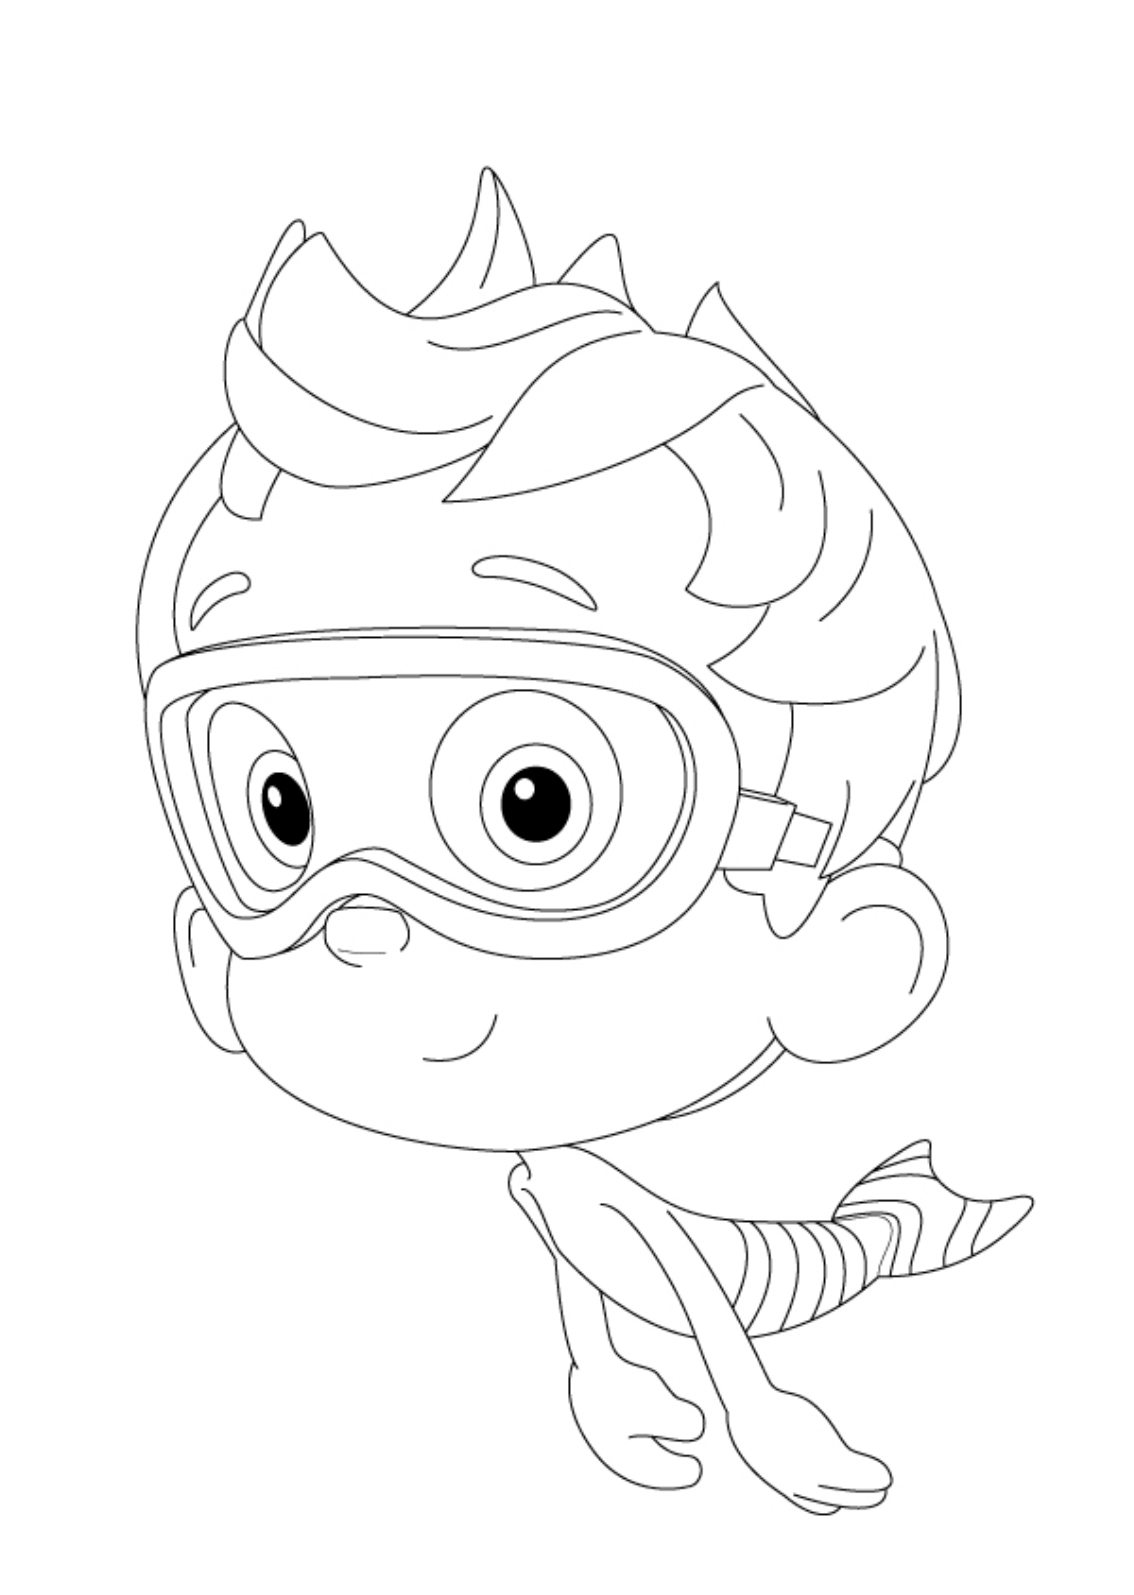 1134x1595 Bubble Guppies Coloring Pages Nonny Cartoon Coloring Pages